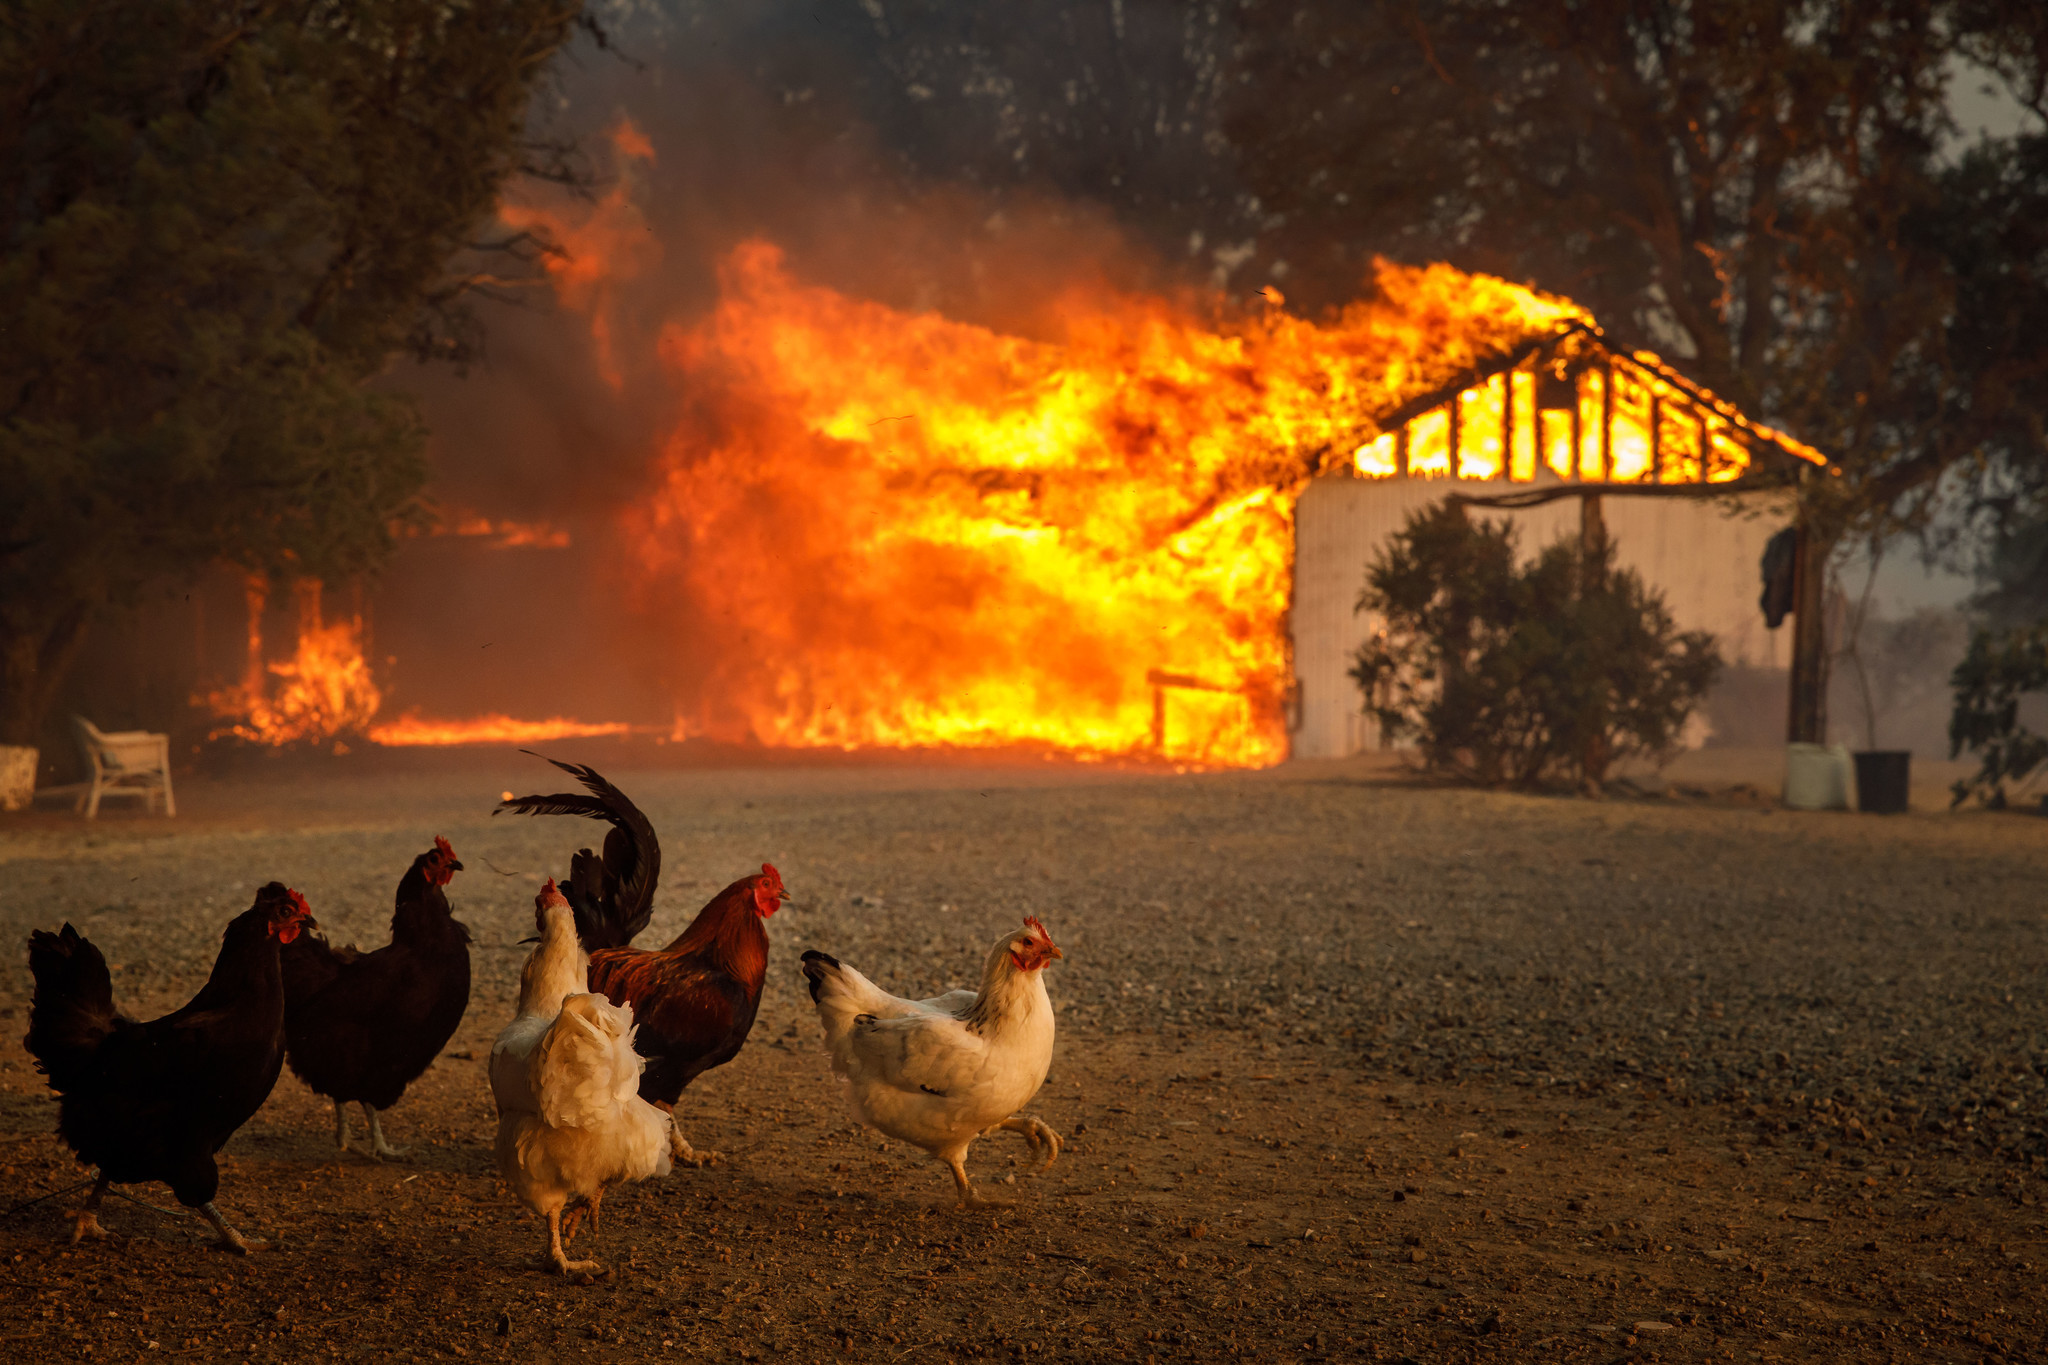 LAKEPORT, CALIF. — TUESDAY, JULY 31, 2018: Chickens watch as a home is destroyed by the River Fire